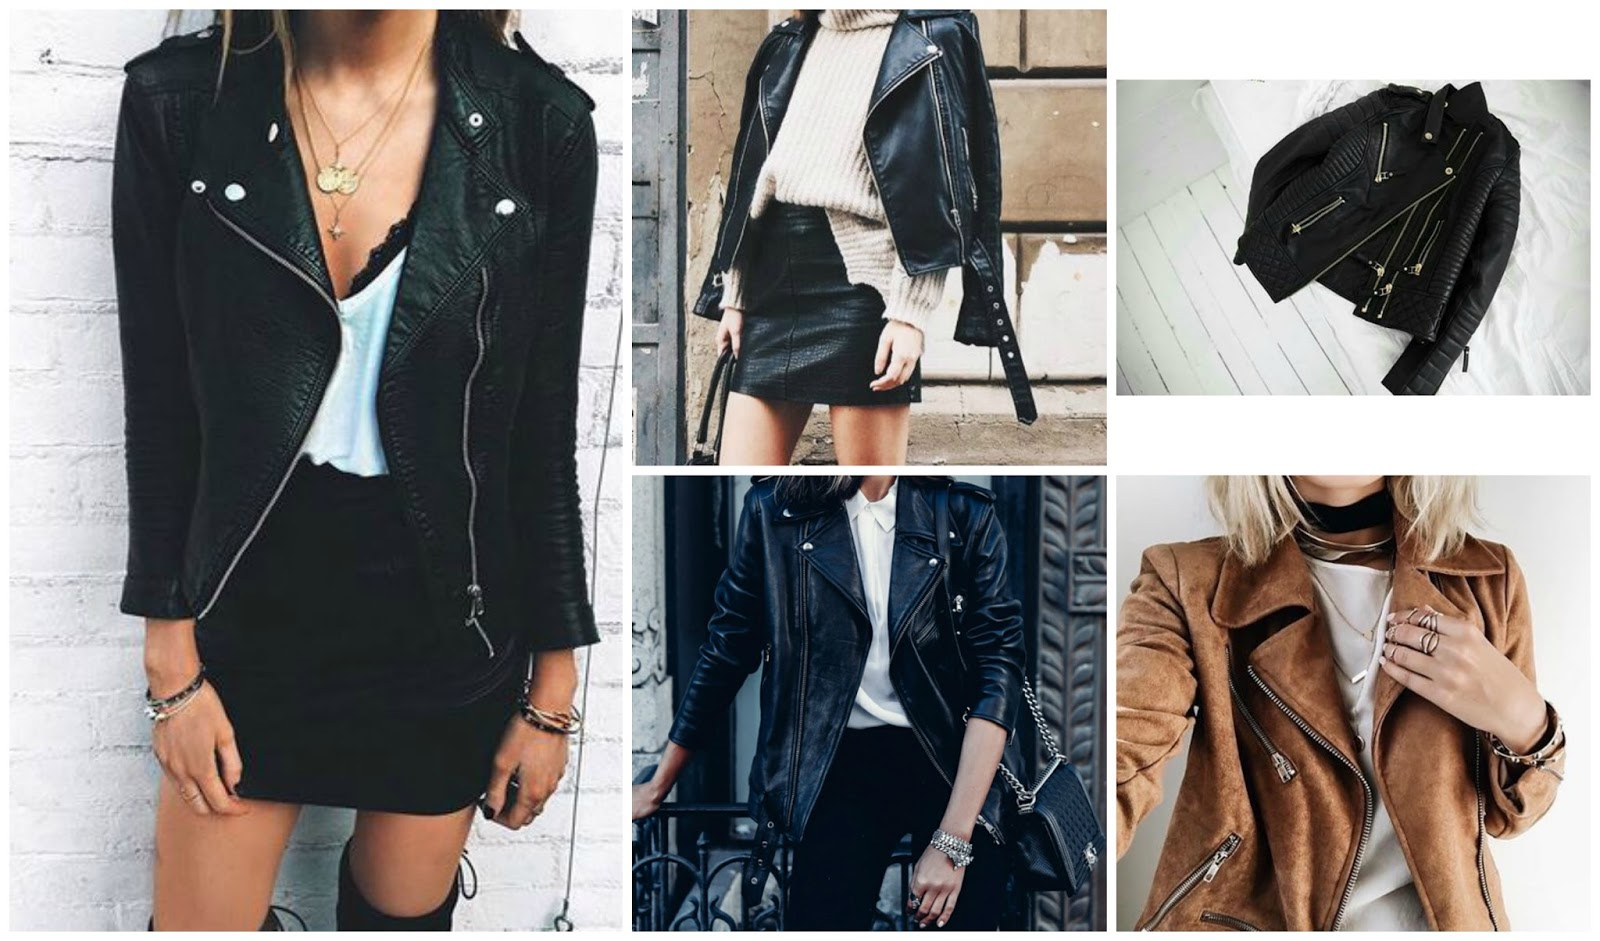 Style Staple – The Leather Jacket